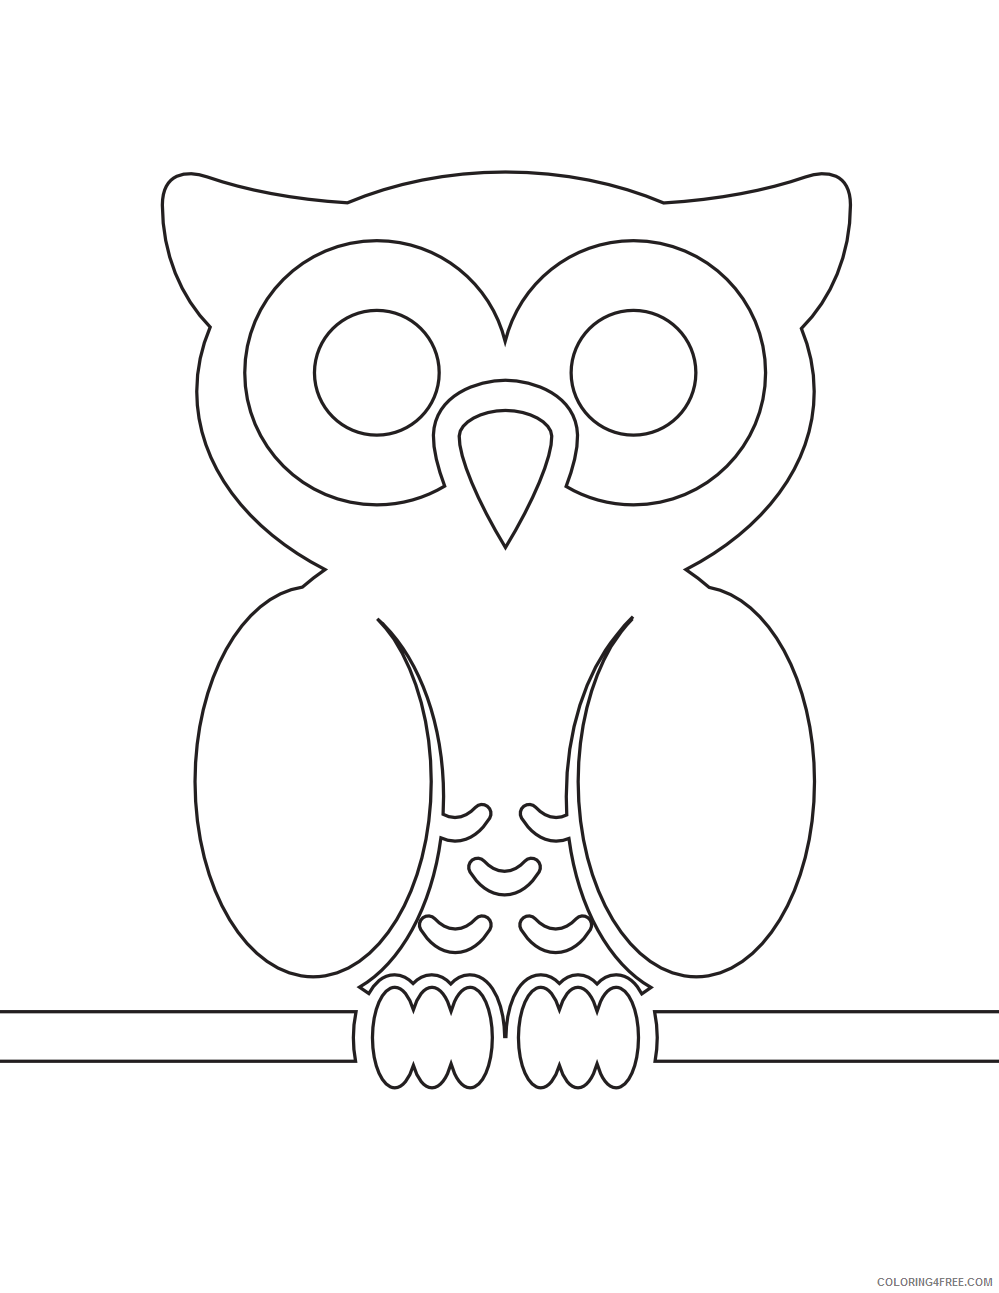 Owl Coloring Pages Coloring Pages owl on wire black white Printable Coloring4free